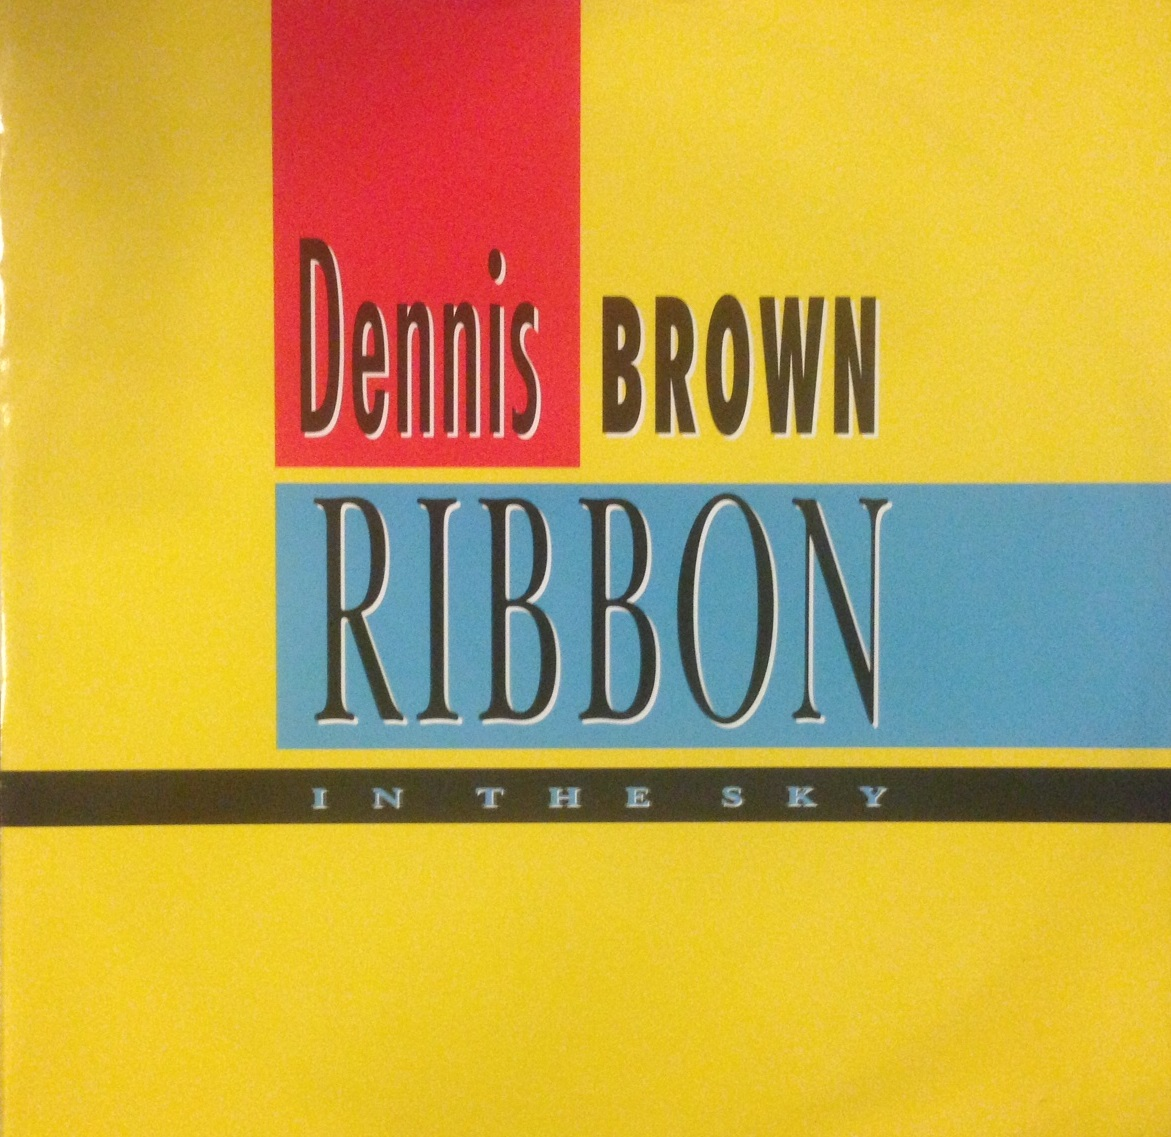 DENNIS BROWN / RIBBON IN THE SKY